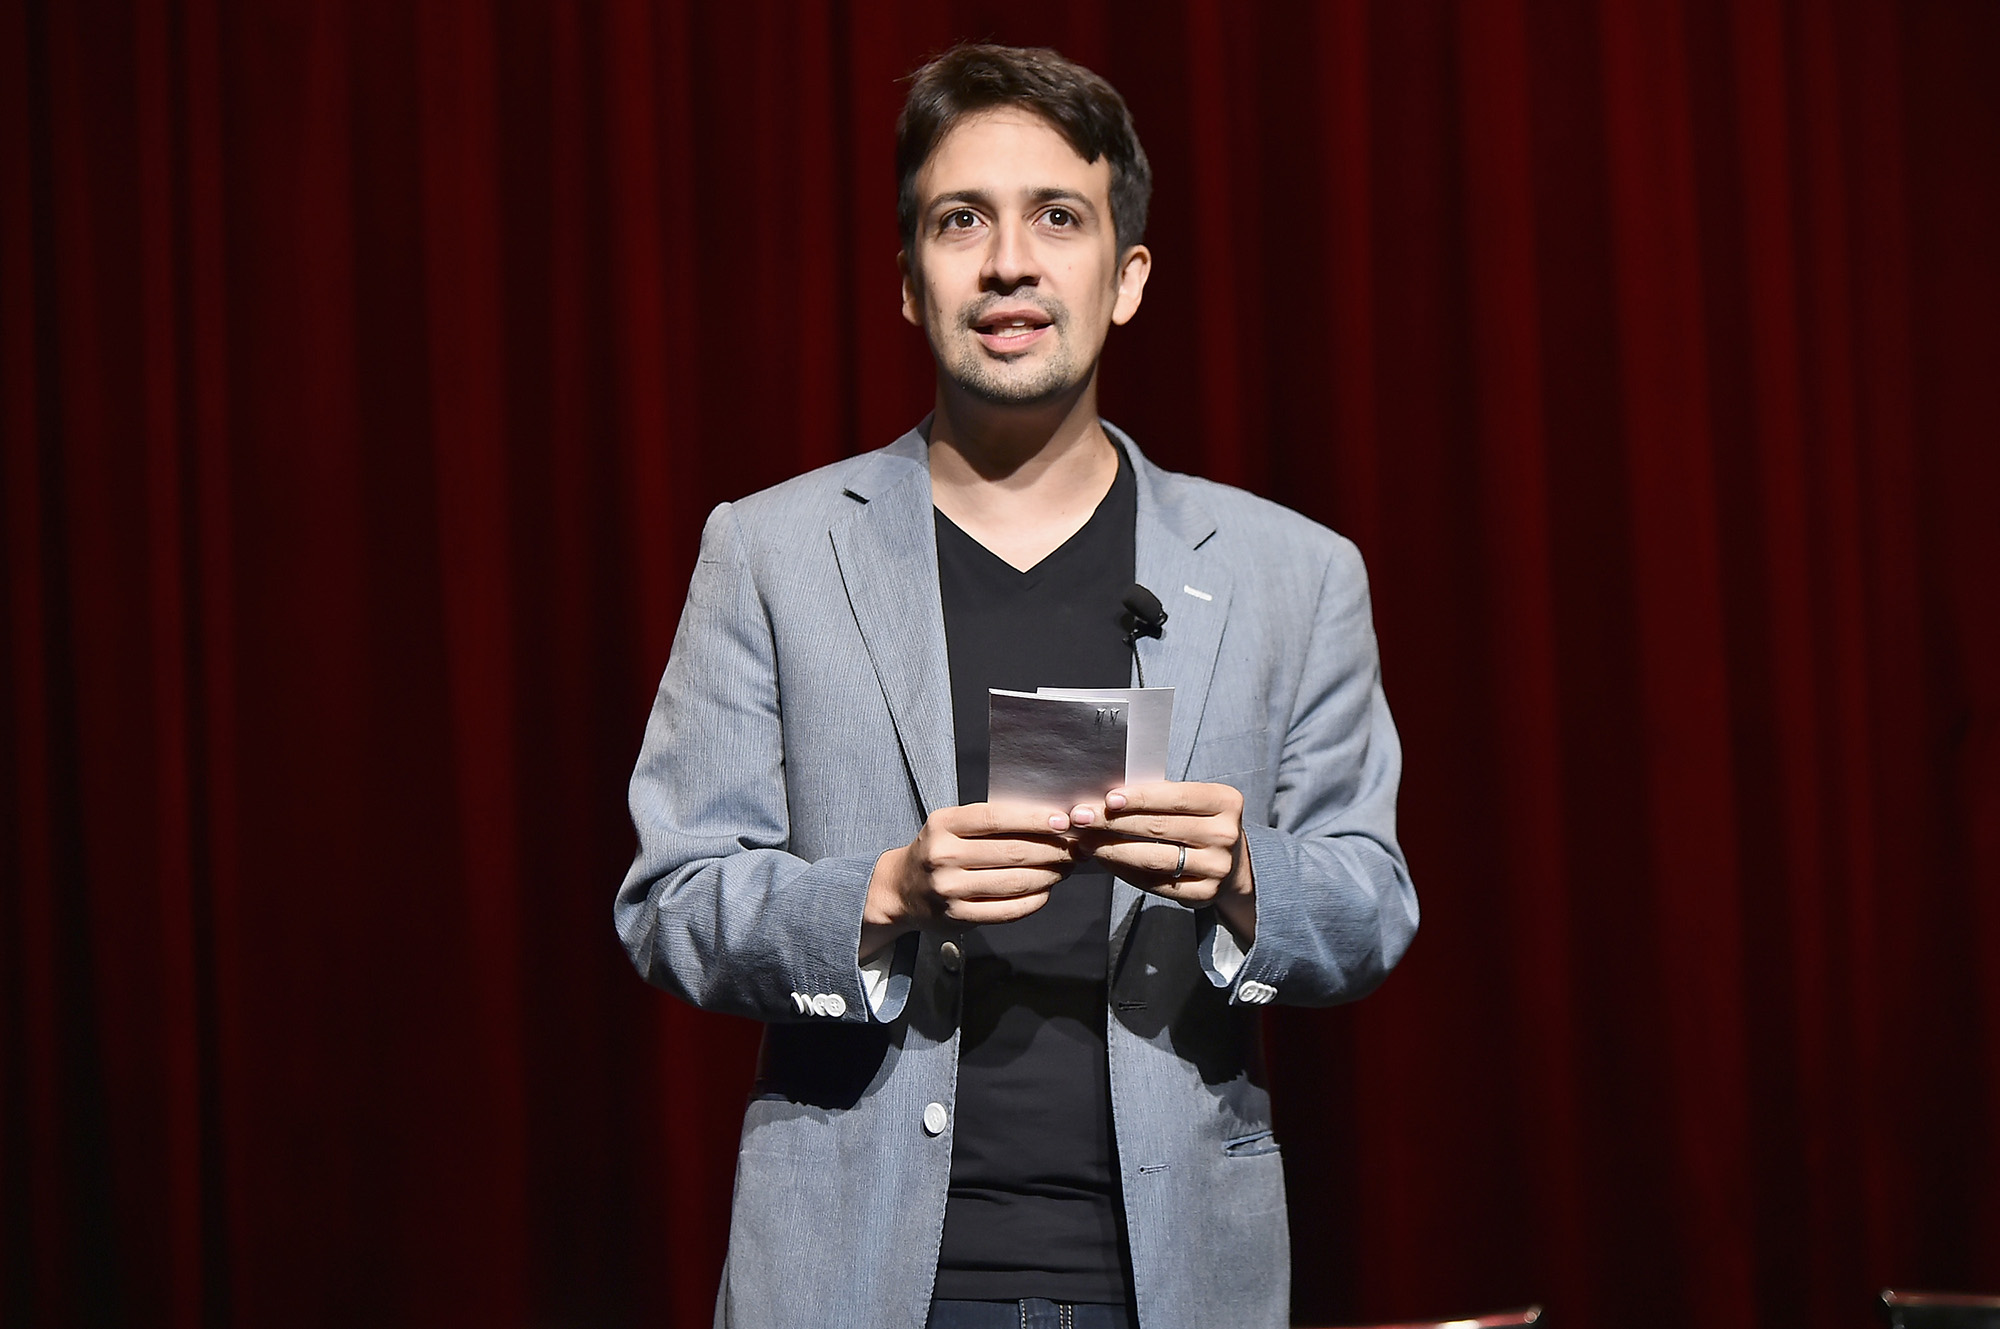 Lin-Manuel Miranda attends the  Grease: Live  Panel & Reception at The Edison Ballroom on August 15, 2016 in New York City.  (Photo by Theo Wargo/Getty Images)